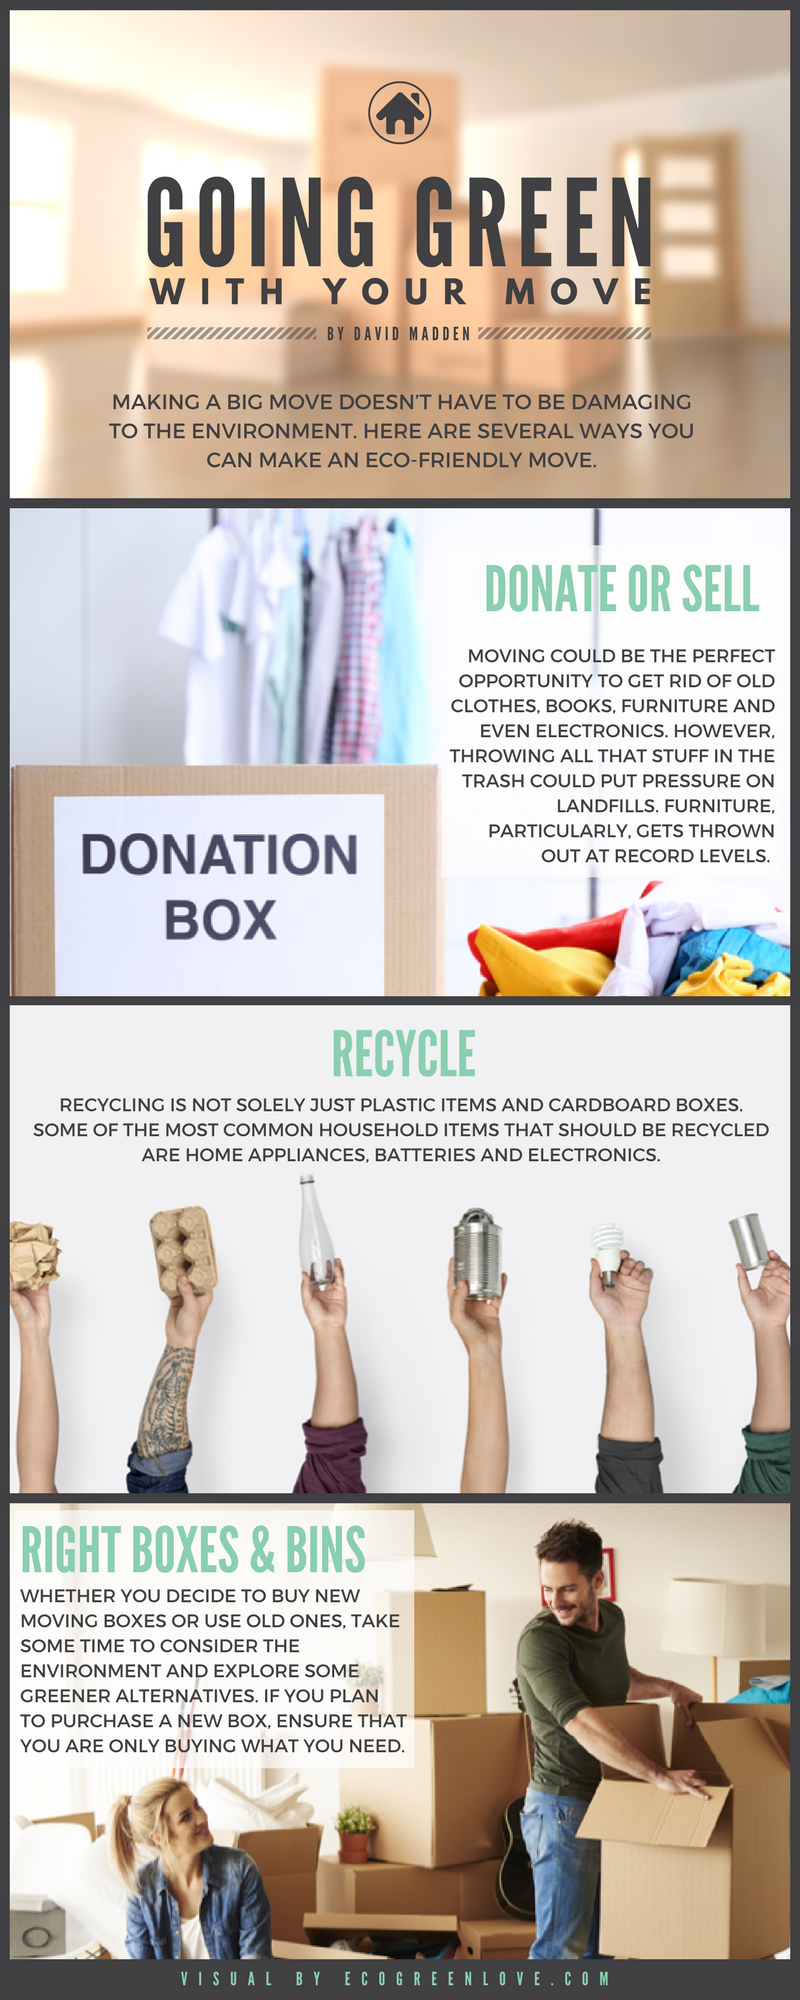 Going Green with your Move [Infographic]   ecogreenlove